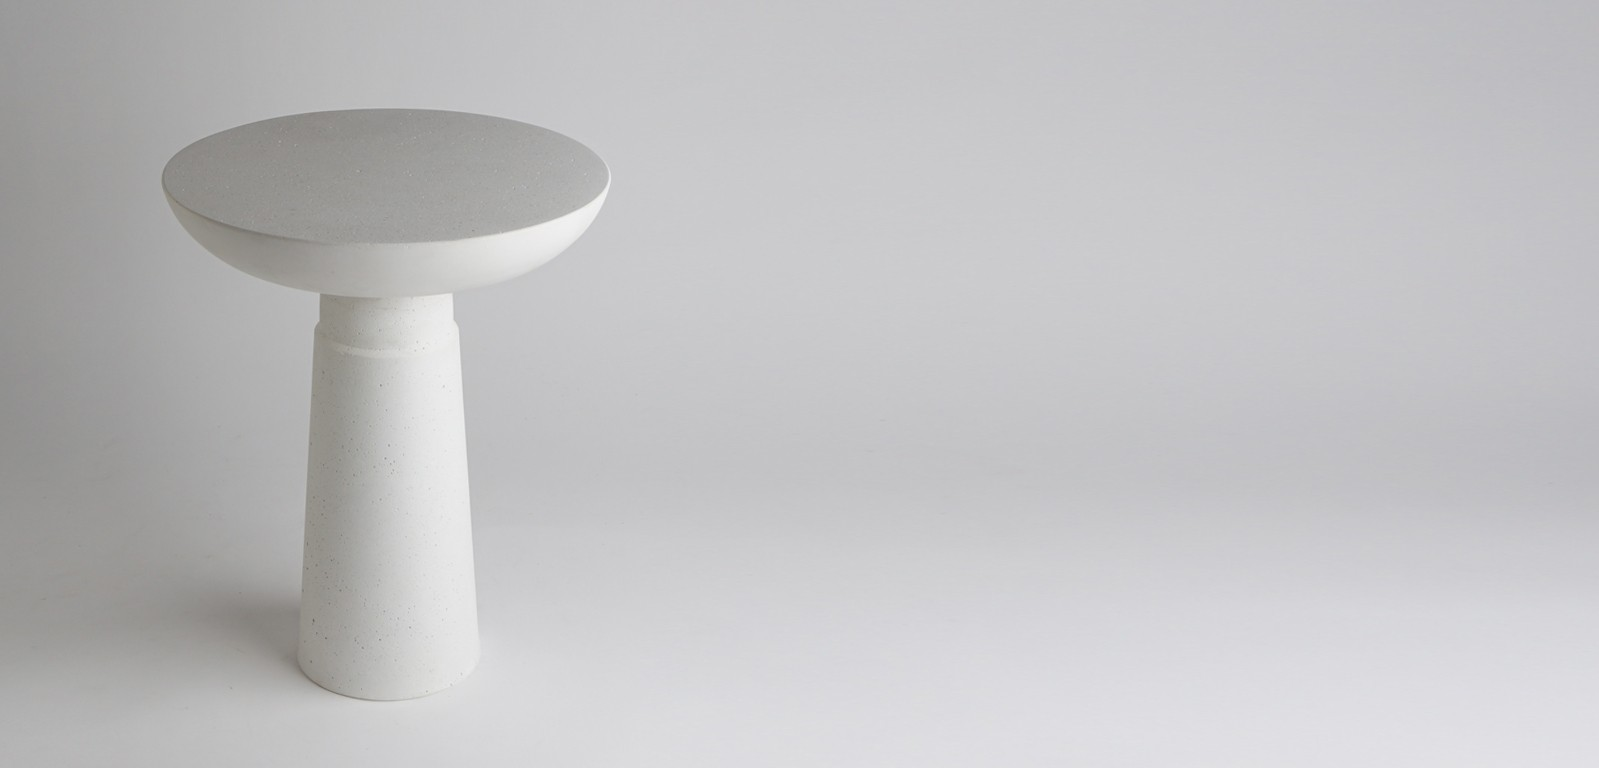 POISE-sculptural-side-accent-coffee-table-white-concrete-6